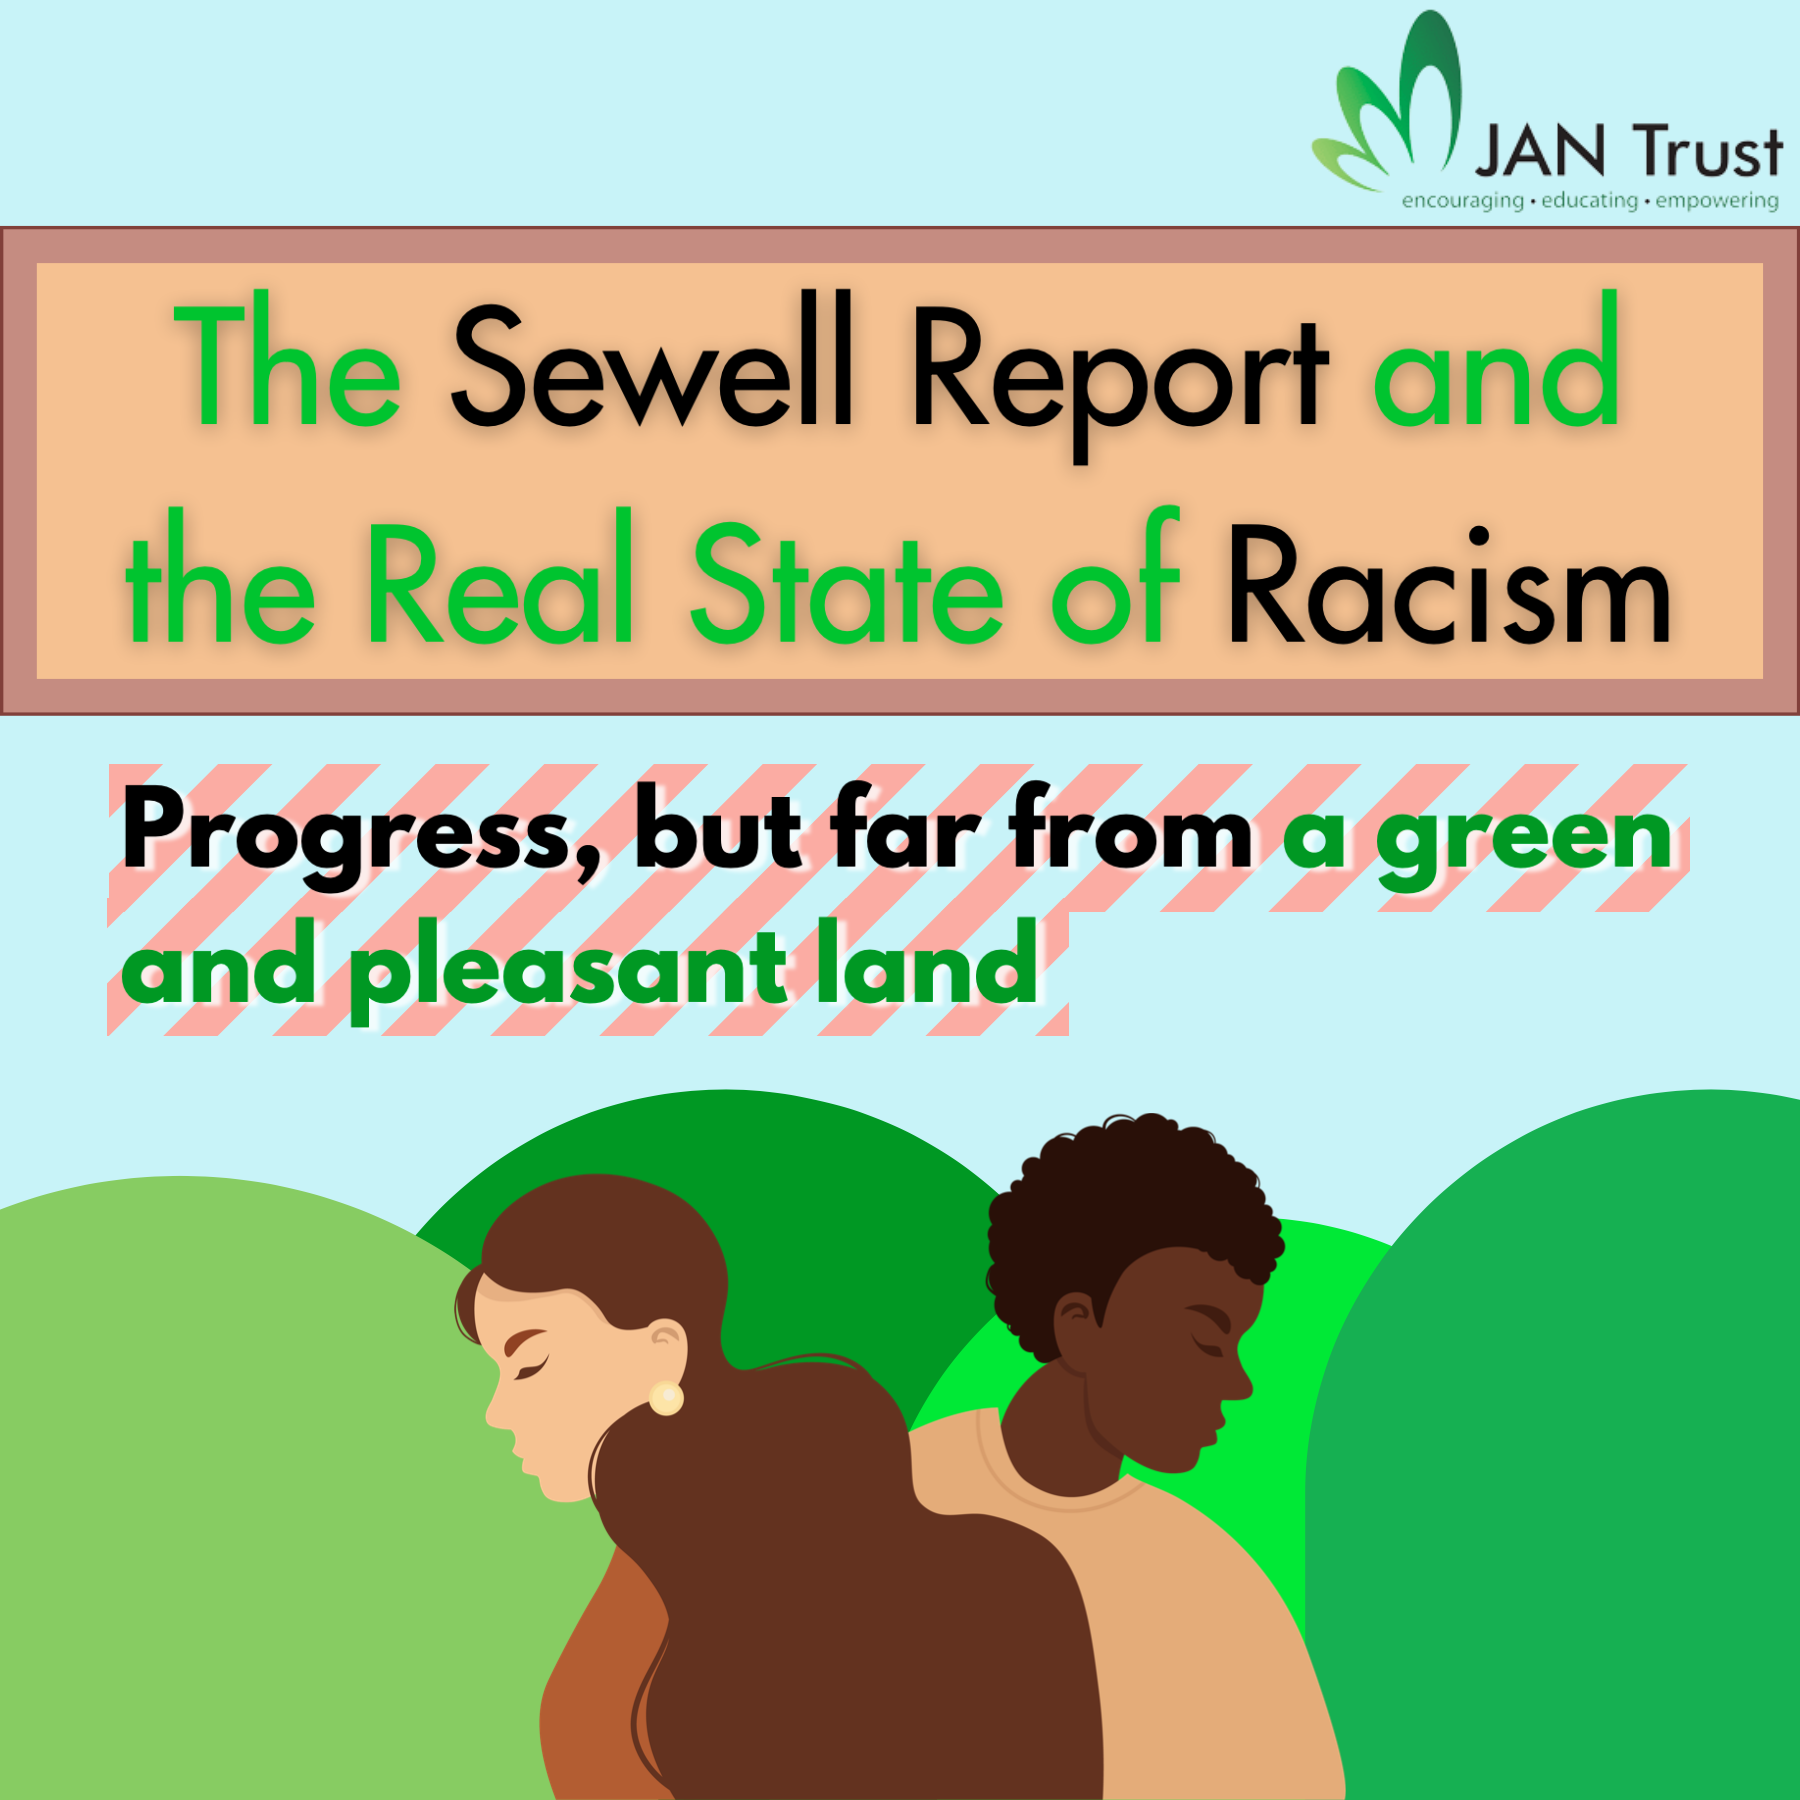 The Sewell report and the real state of racism: progress, but far from a green and pleasant land